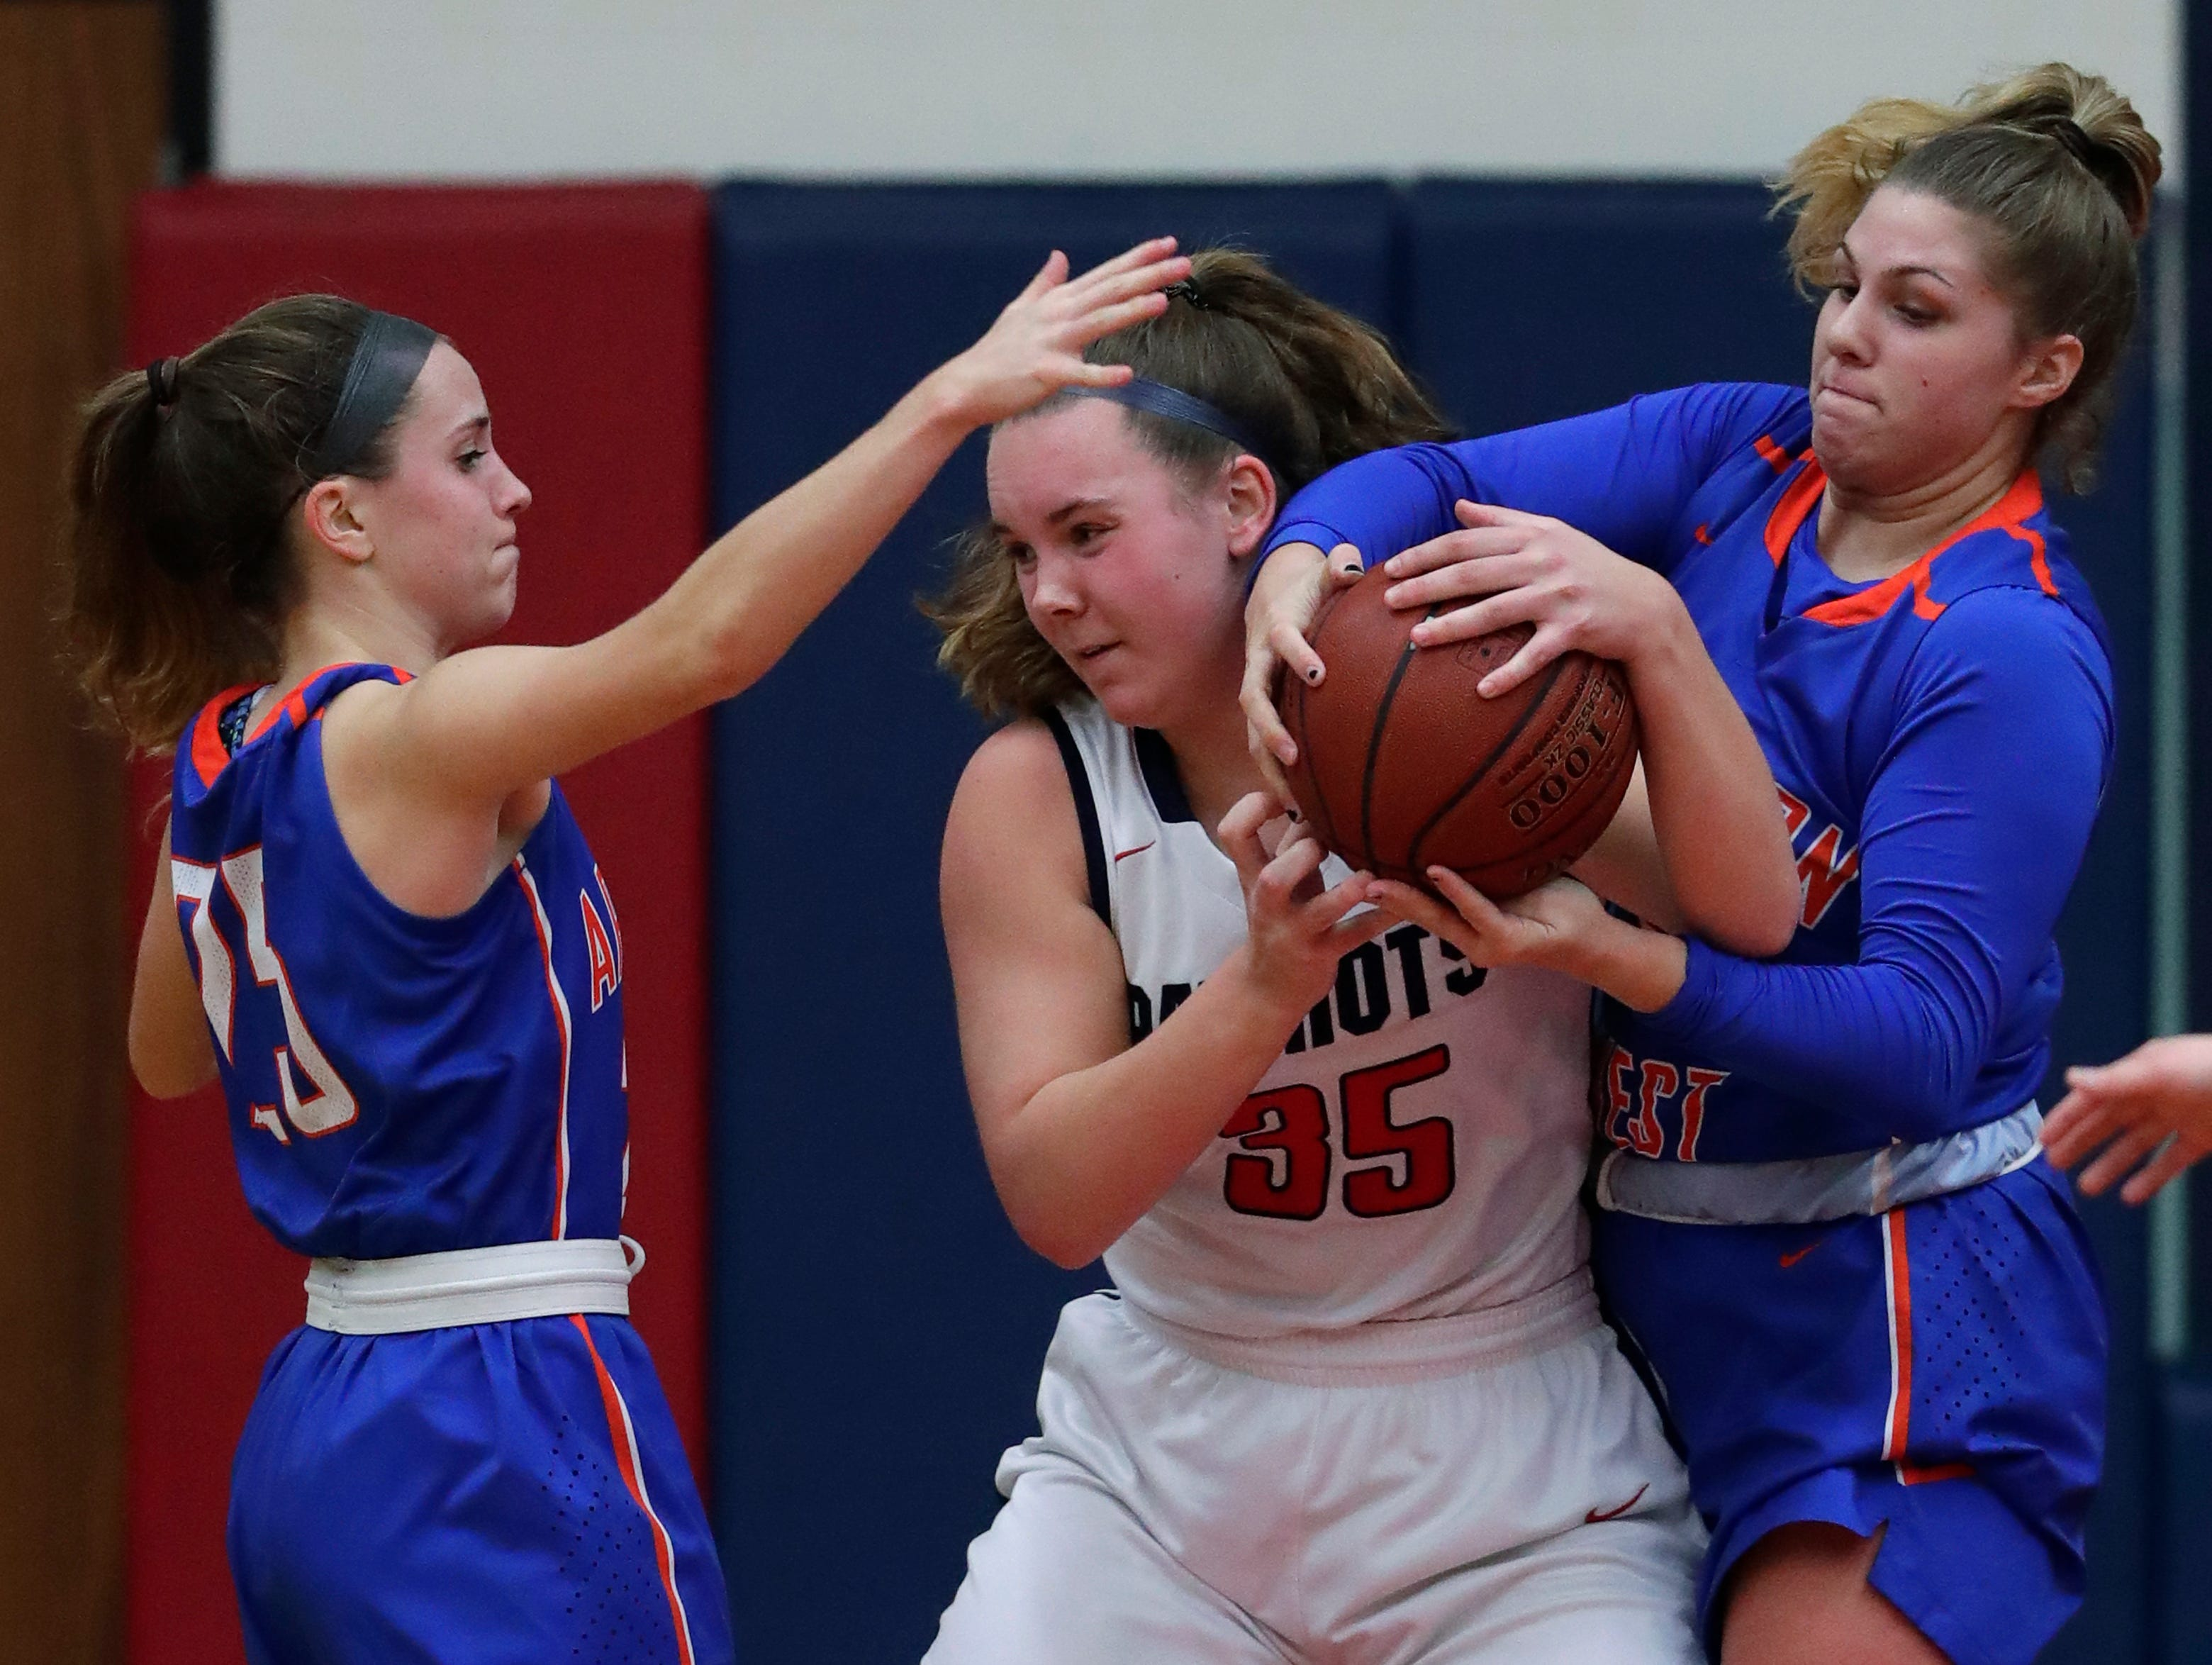 Appleton East High School's Lily Wendland (35) battles for a rebound against Appleton West High School's Julia Smith (25) and Sydney Gehl (35) during their girls basketball game Friday, January 11, 2019, at Appleton East High School in Appleton, Wis. 